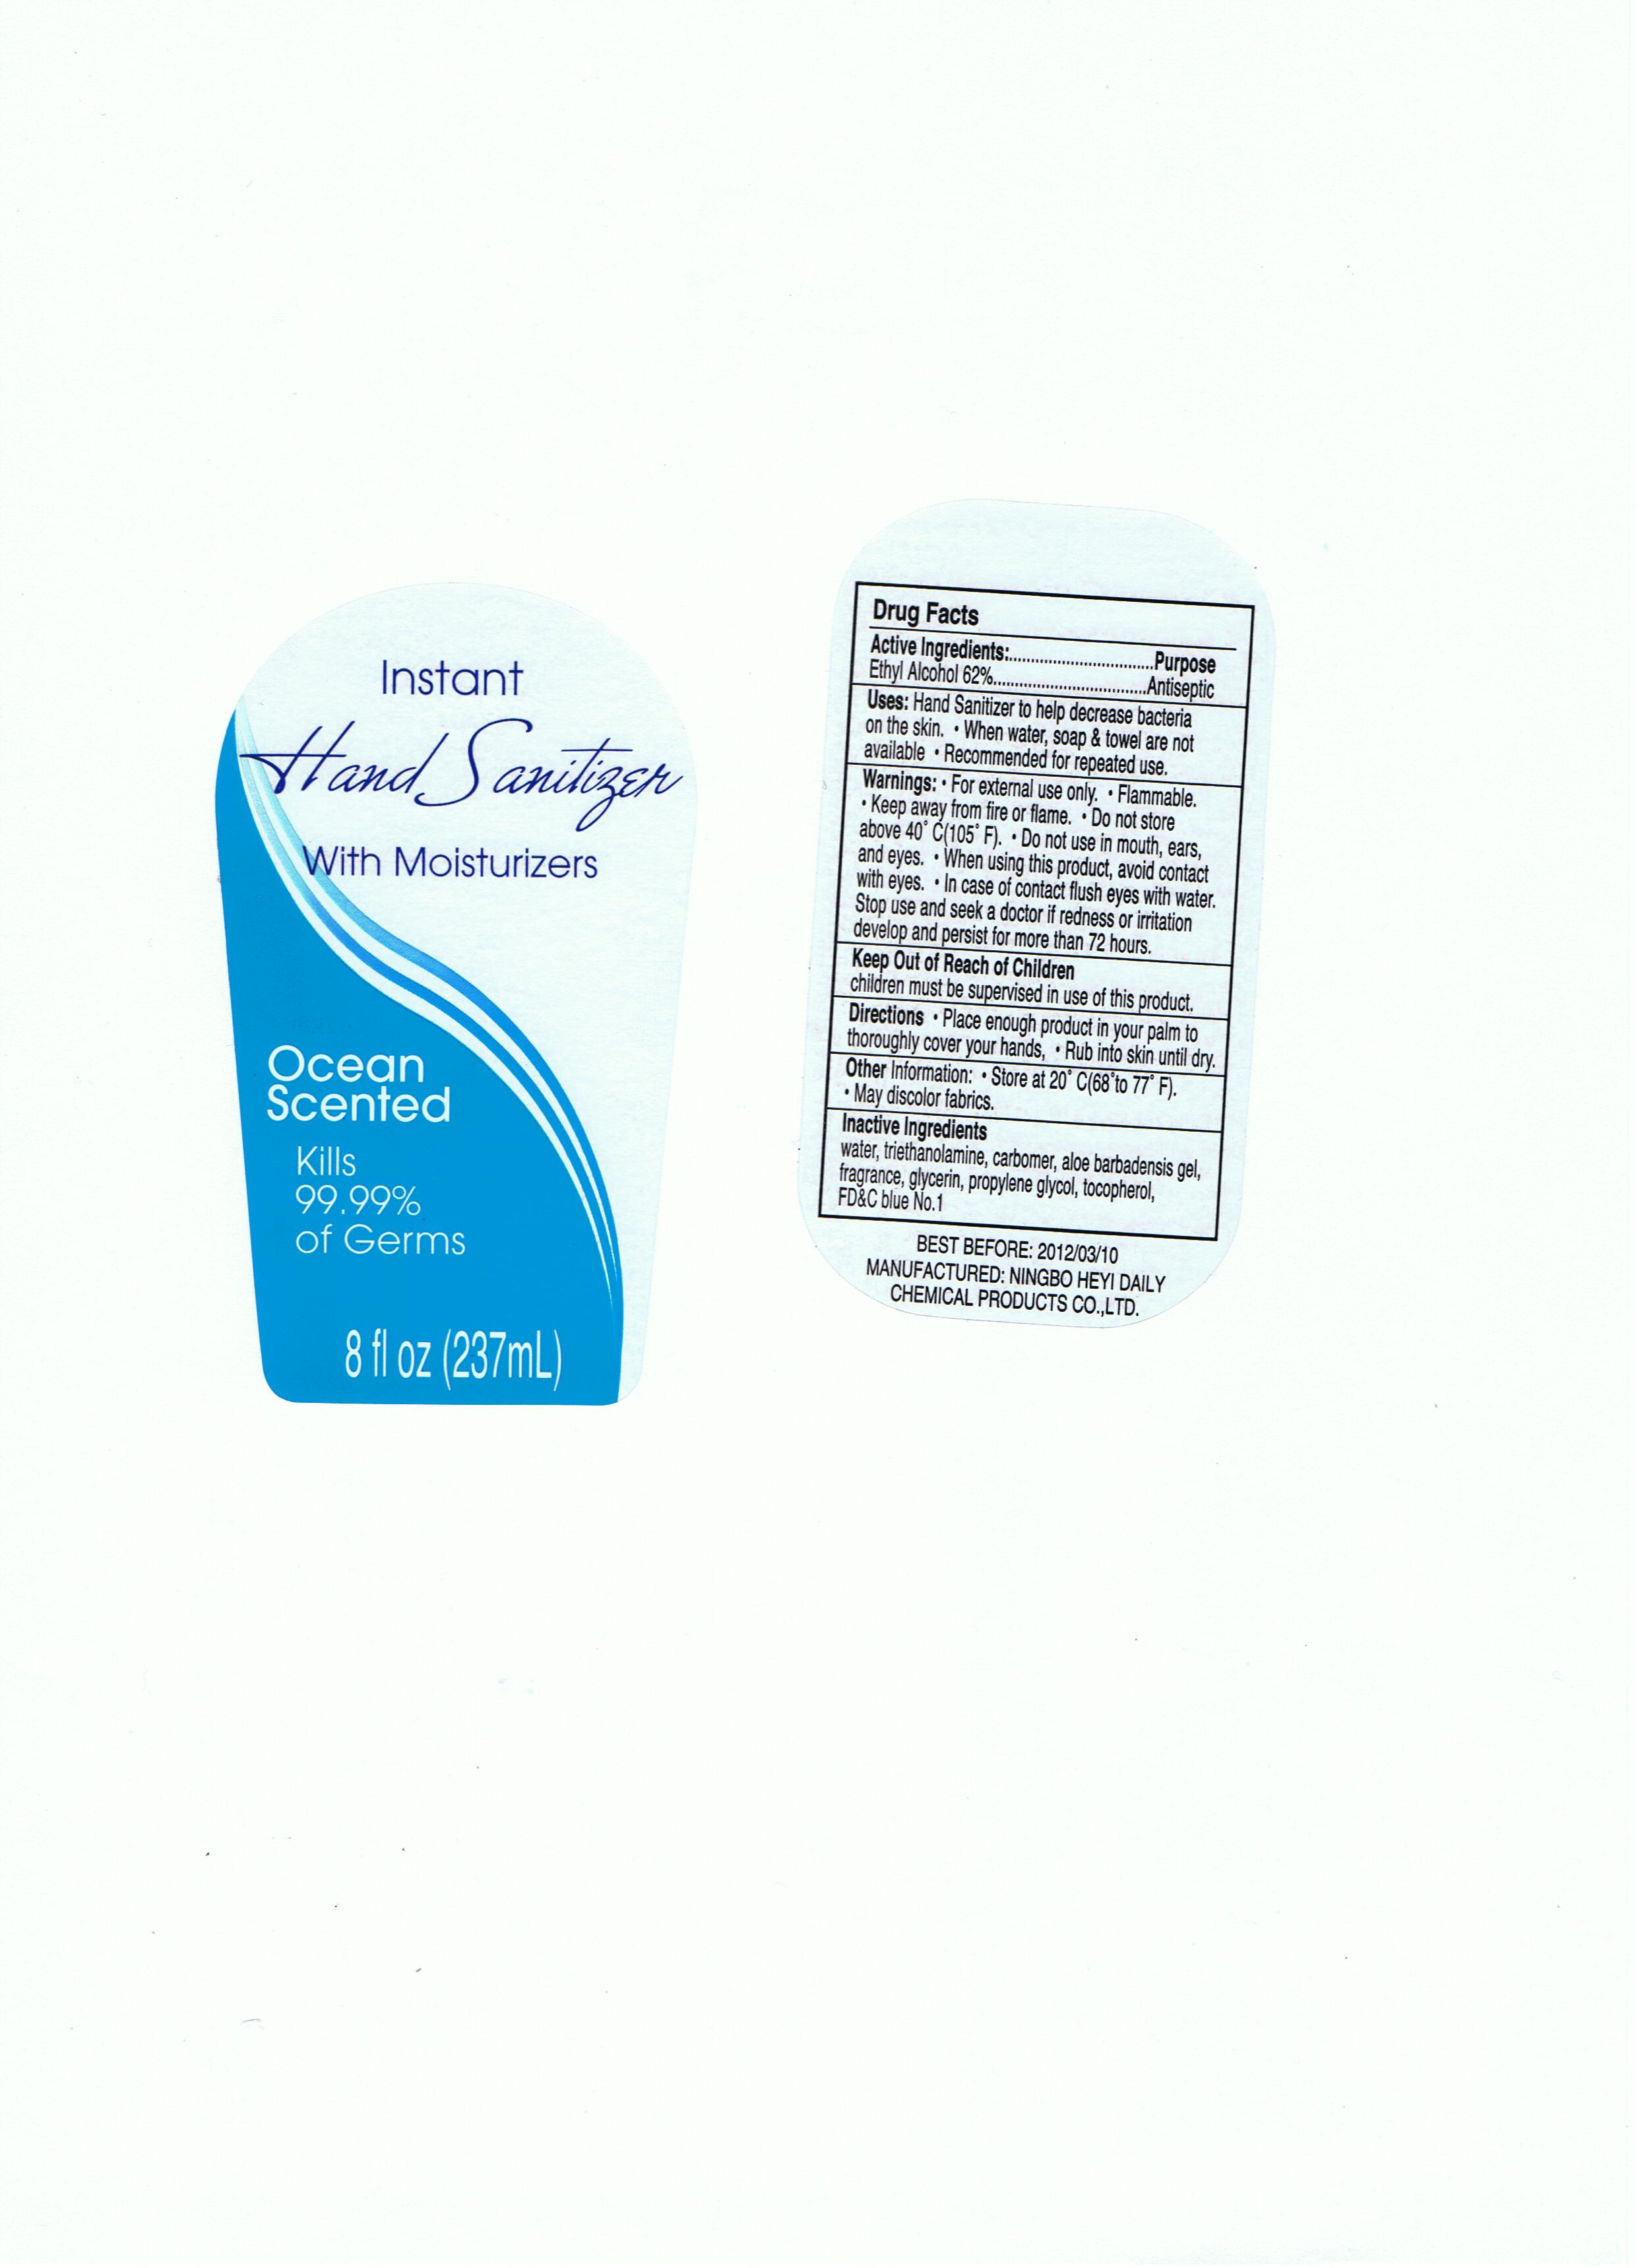 Instant Hand Sanitizer With Moisturizers Ocean Scented (Alcohol) Liquid [Ningbo Heyi Daily Chemical Products Co., Ltd.]